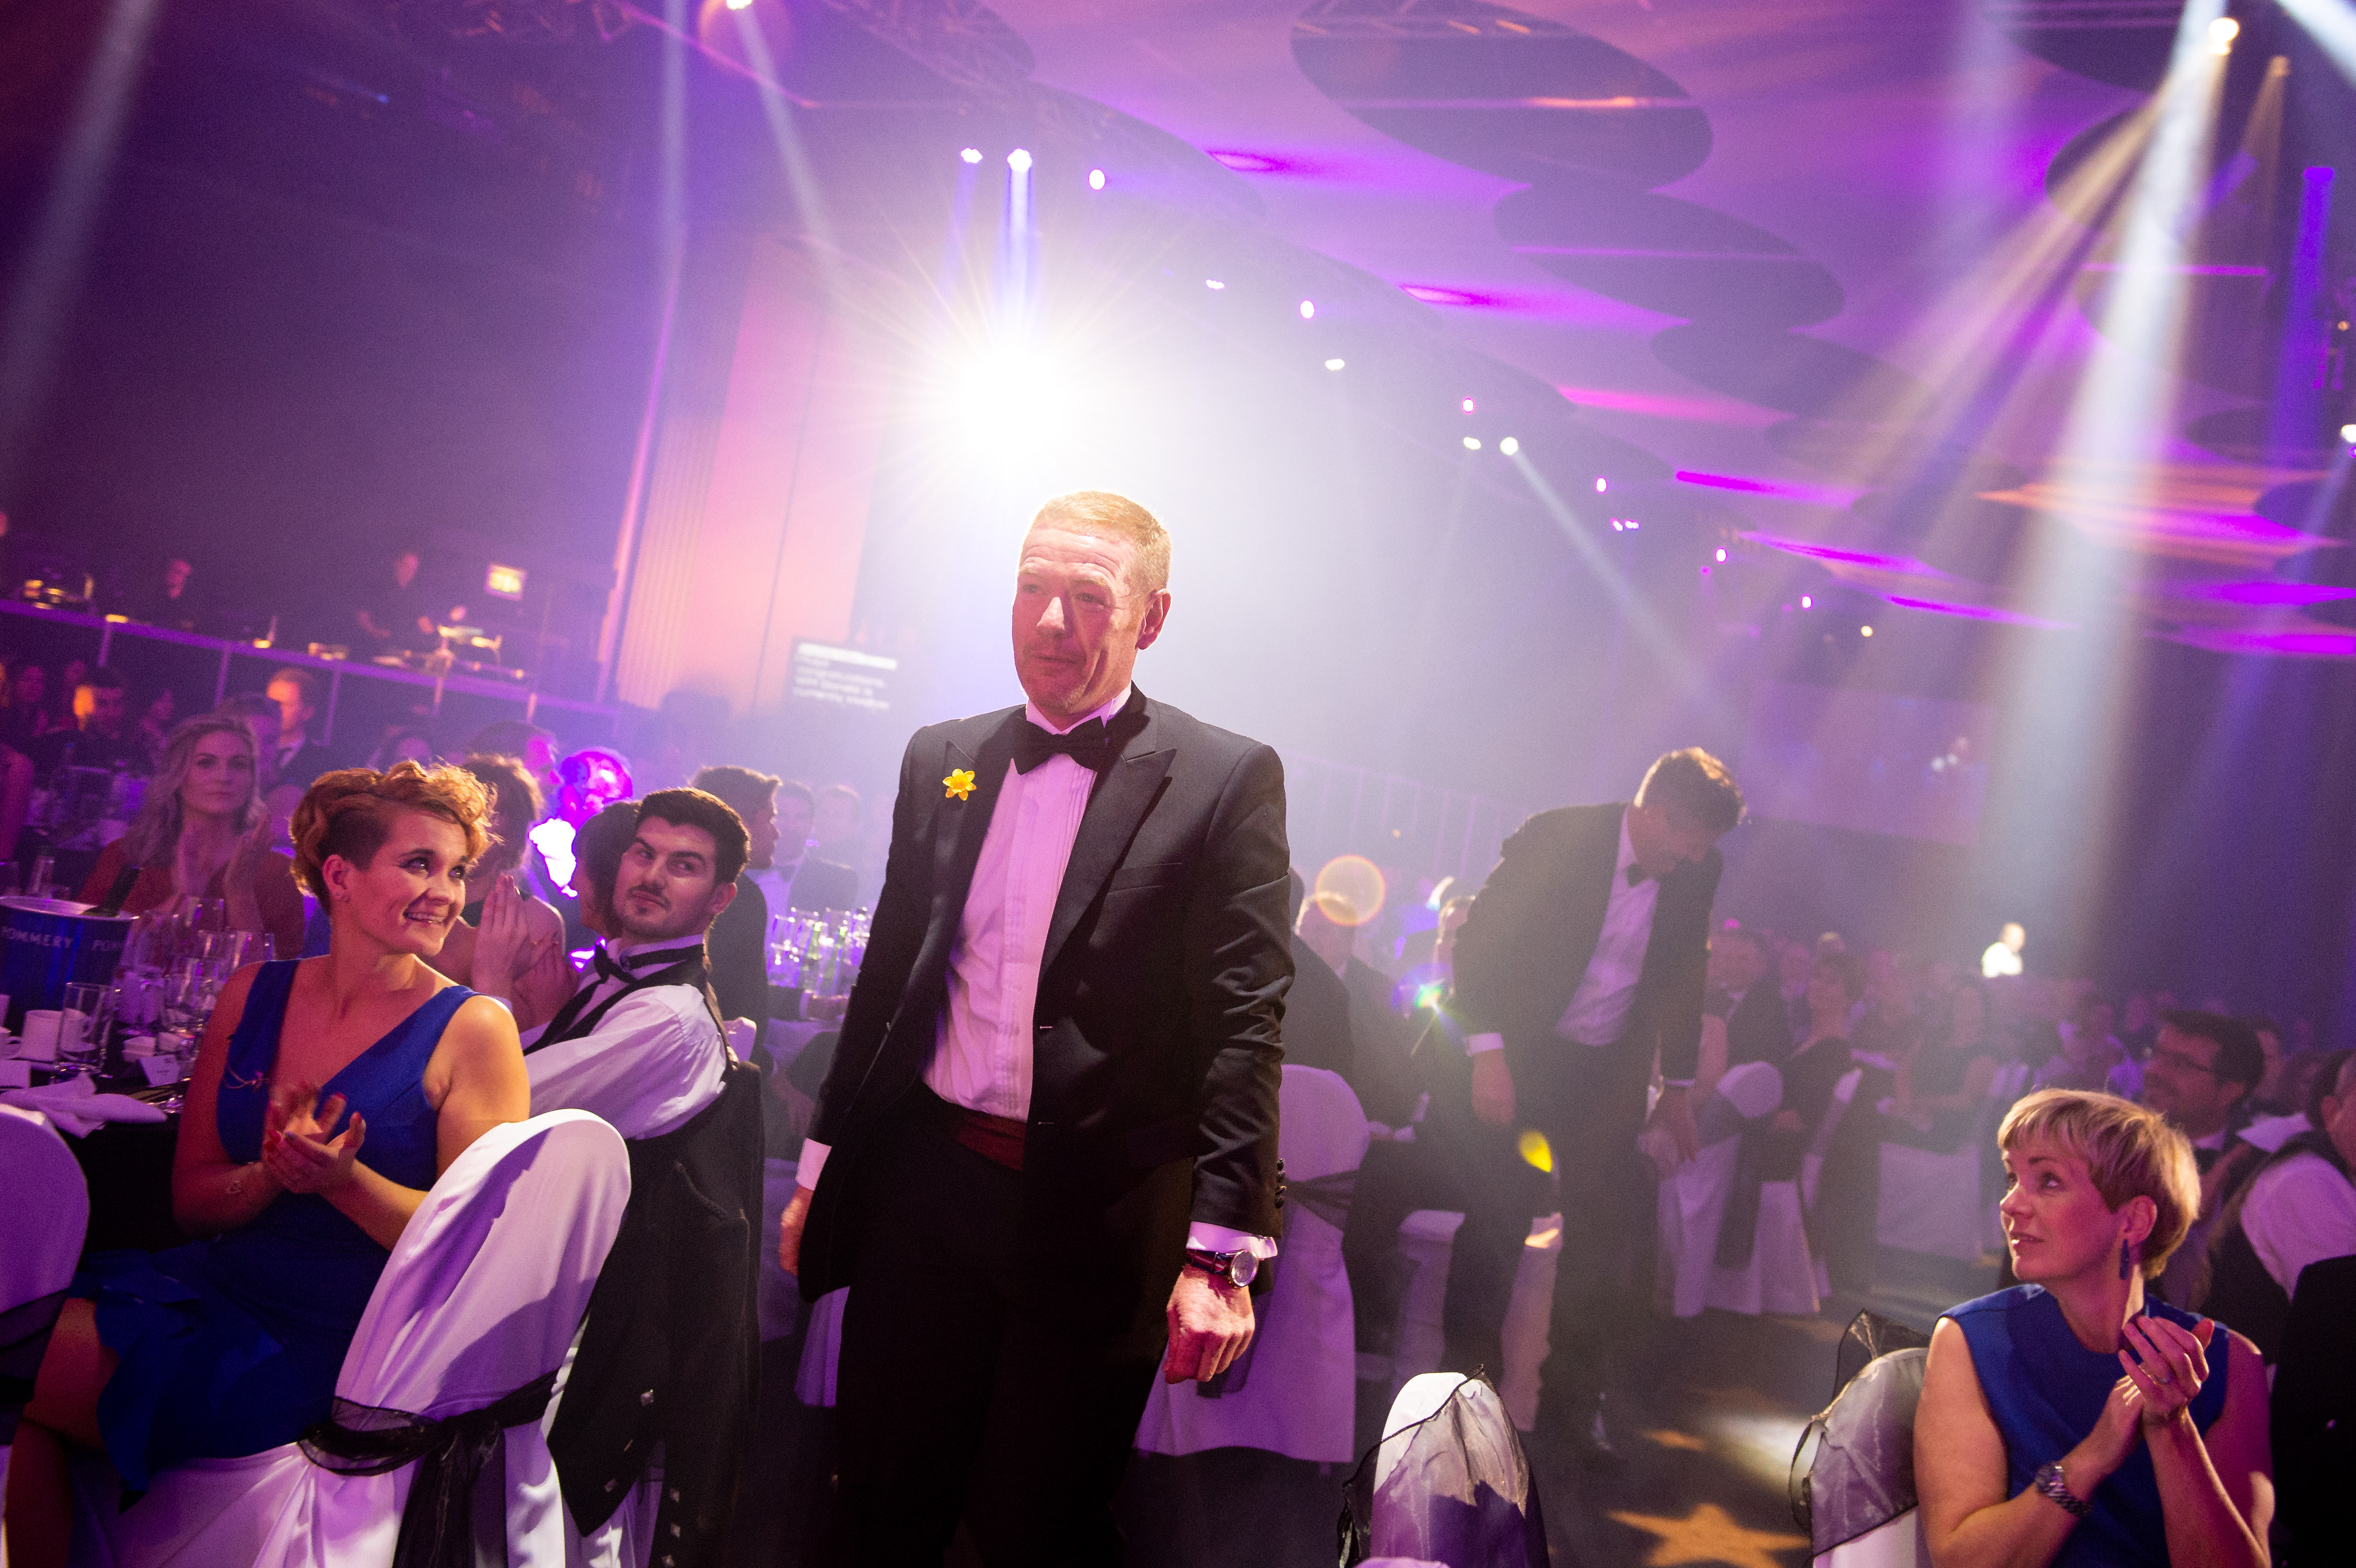 Northern Star Business Awards 2018. Pictured is Operations Manager at W M Donald Limited, Ian Gray approaching the stage to collect the award for Business of the Year.